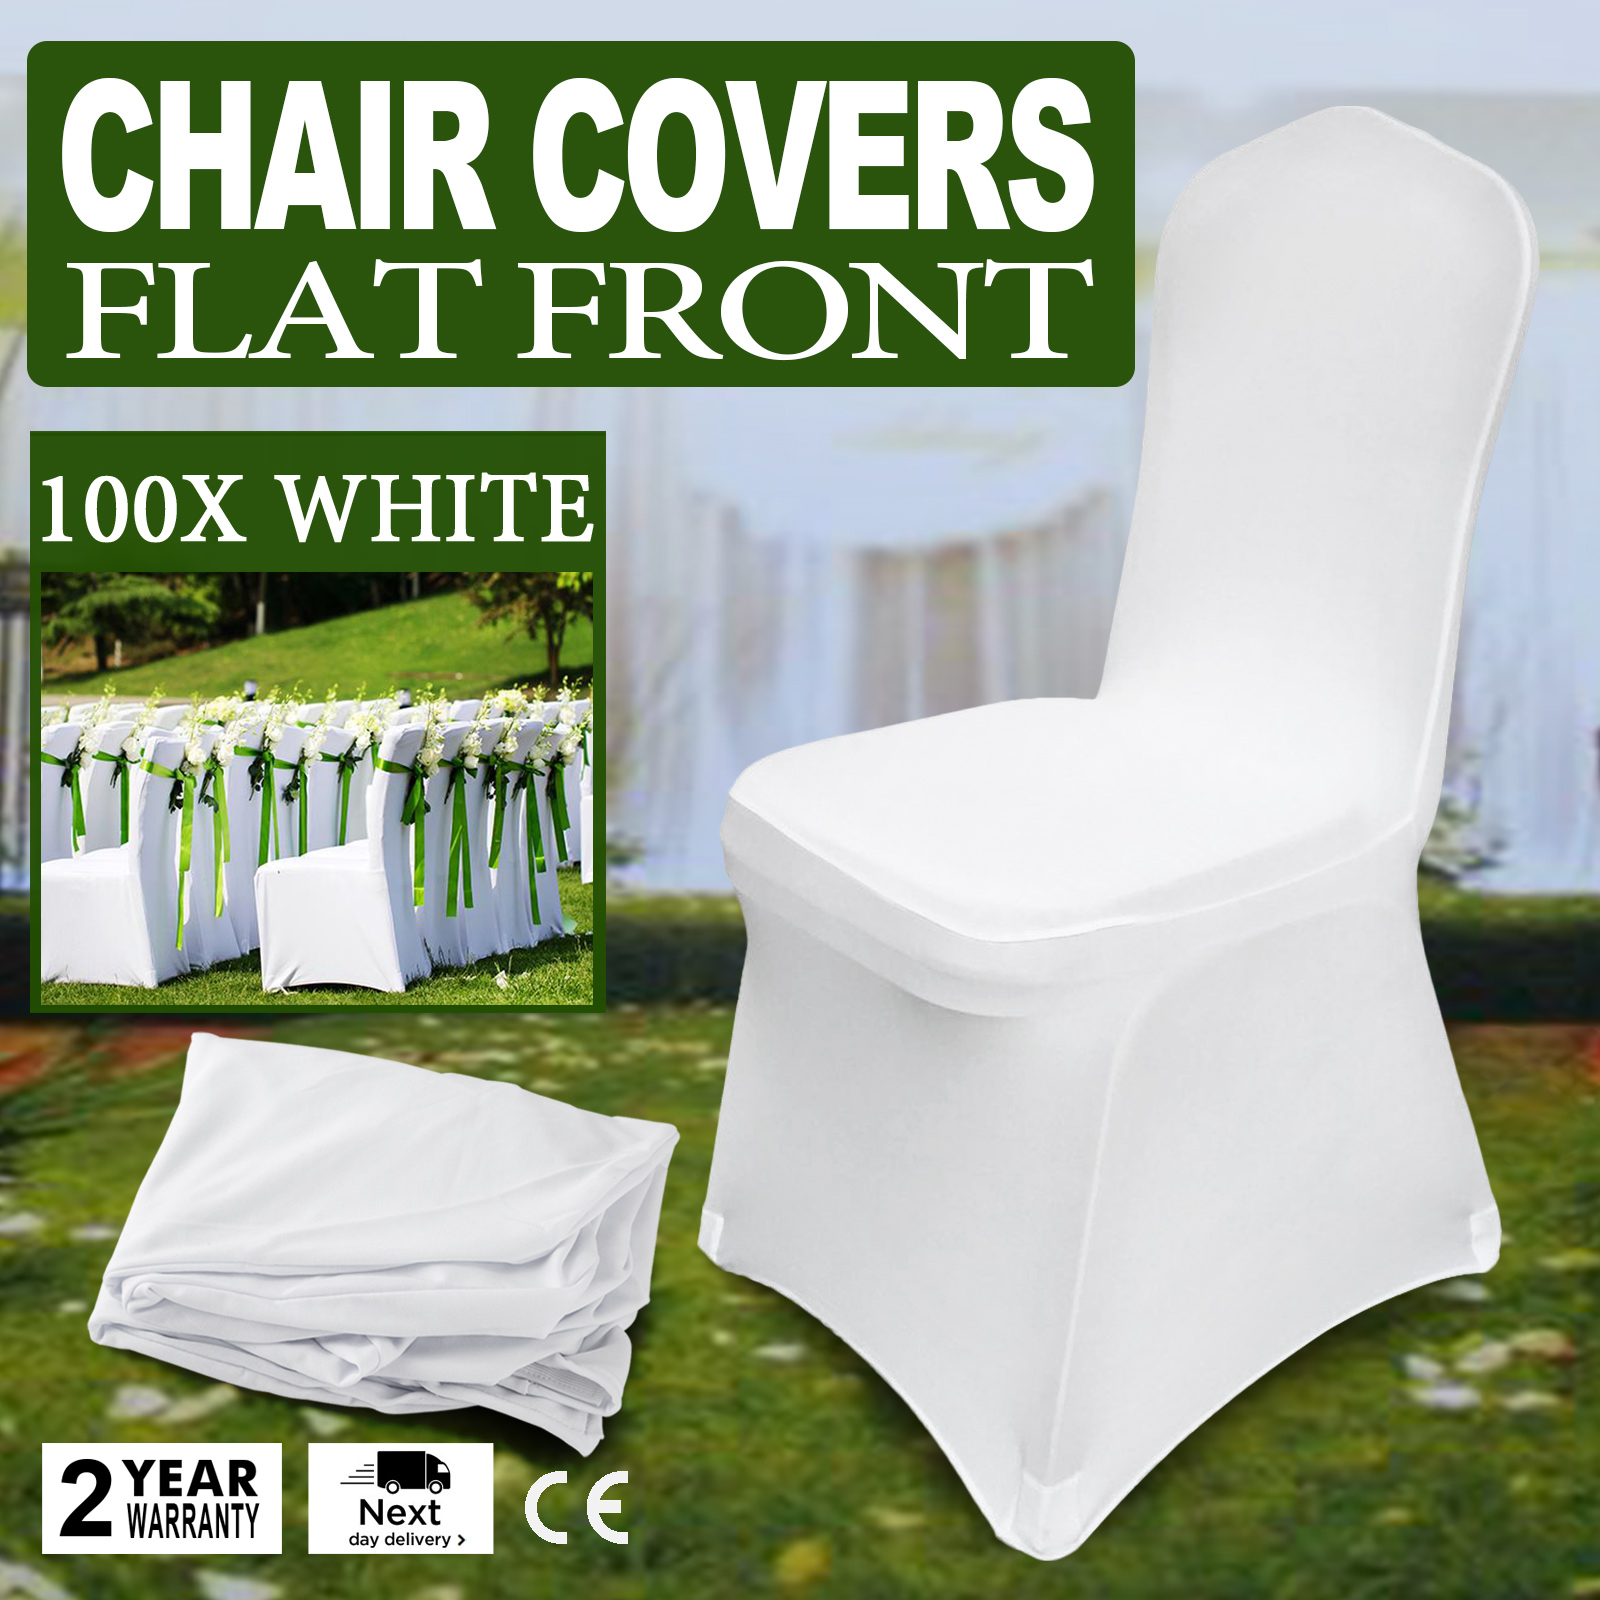 Pleasant Details About 100Pcs Stretch Spandex White Folding Chair Covers Seat Chairs Universal Pabps2019 Chair Design Images Pabps2019Com